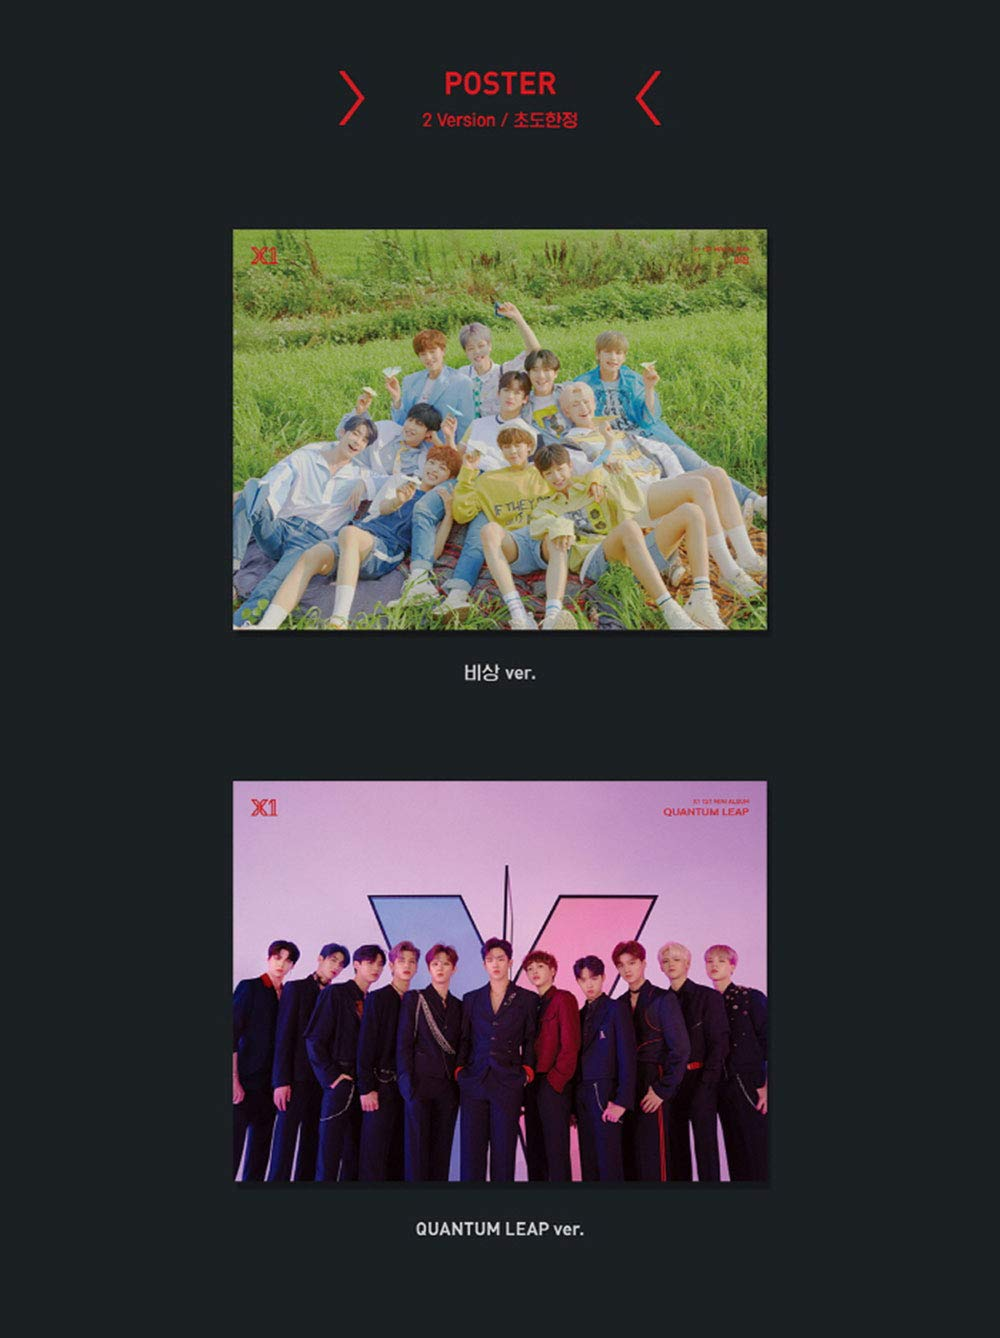 Stone Music Entertainment X1 - Soaring : Quantum Leap [Soaring+Quantum Leap ver. Set] (1st Mini Album) 2CD+2Photobooks+2Mini Photo Stands+2Bookmarks+2Postcards+2Special AR Photocards+2Folded Posters by X1